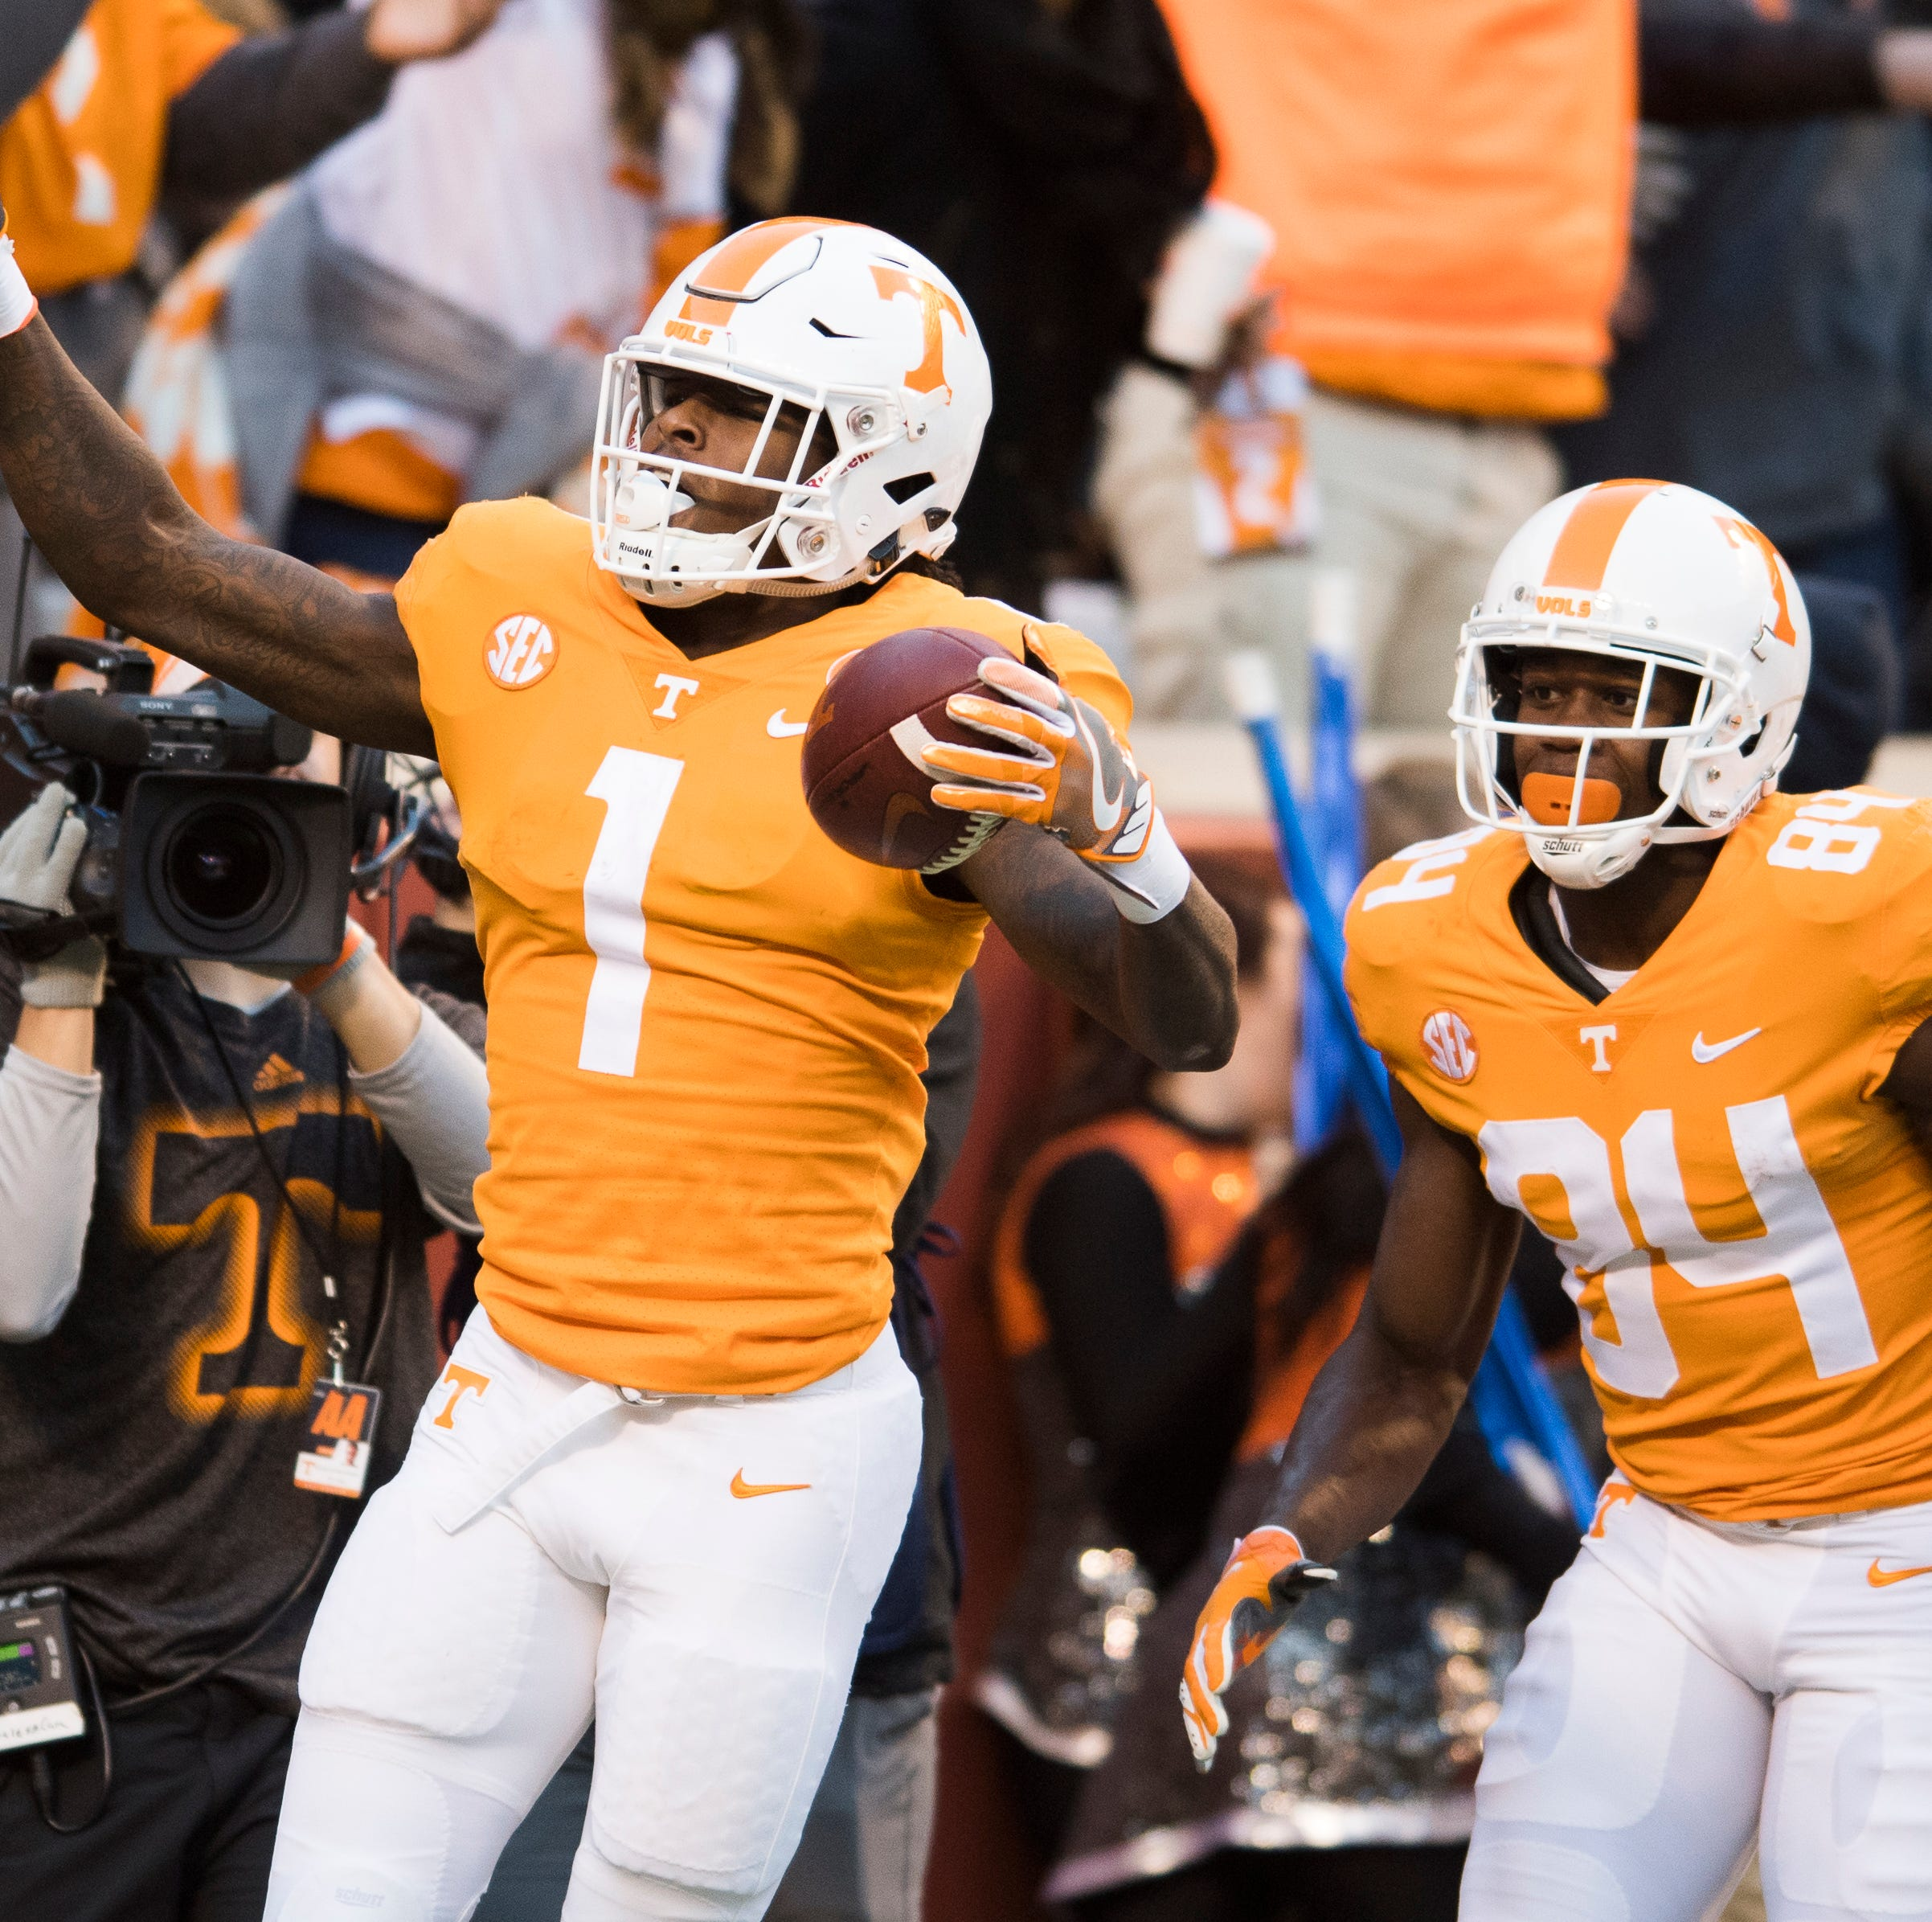 UT Vols football at its best again brings out worst in Kentucky at Neyland